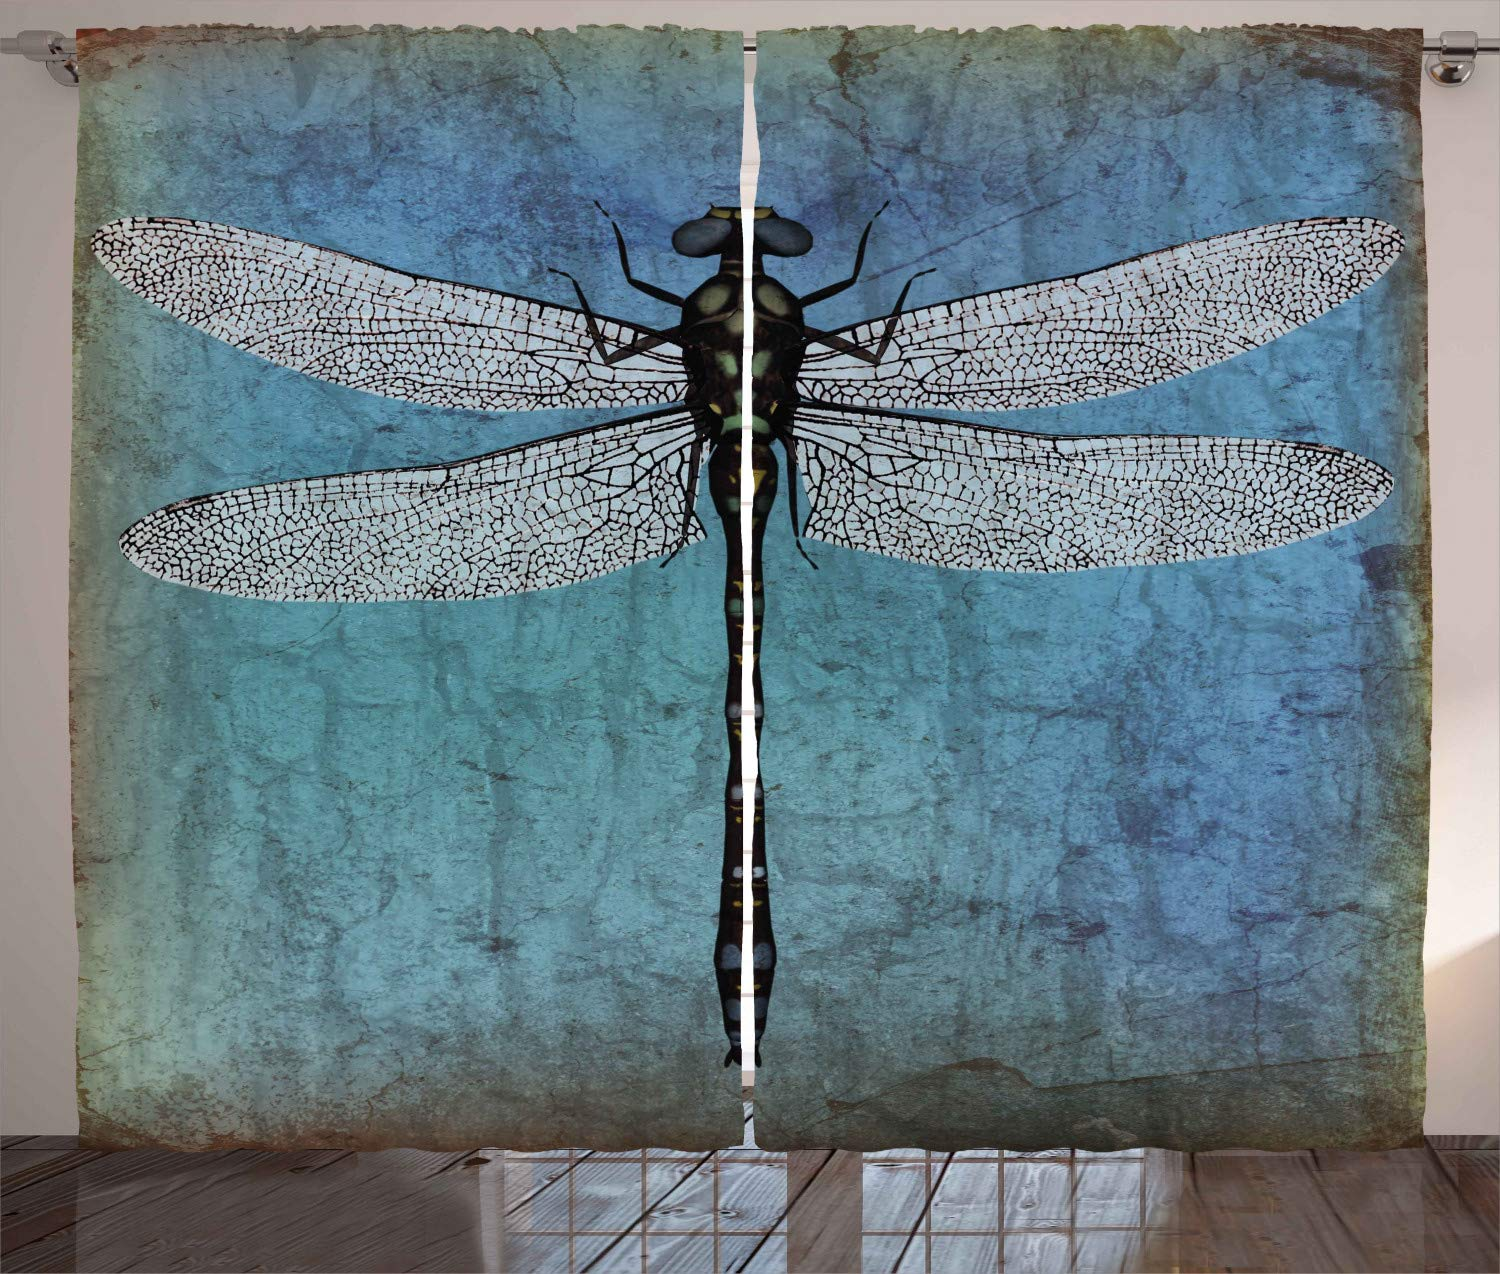 Ambesonne Dragonfly Curtains Grunge Vintage Old Backdrop And Dragonfly Bug Ombre Image Living Room Bedroom Window Drapes 2 Panel Set 108 W X 108 L Inches Blue Turquoise